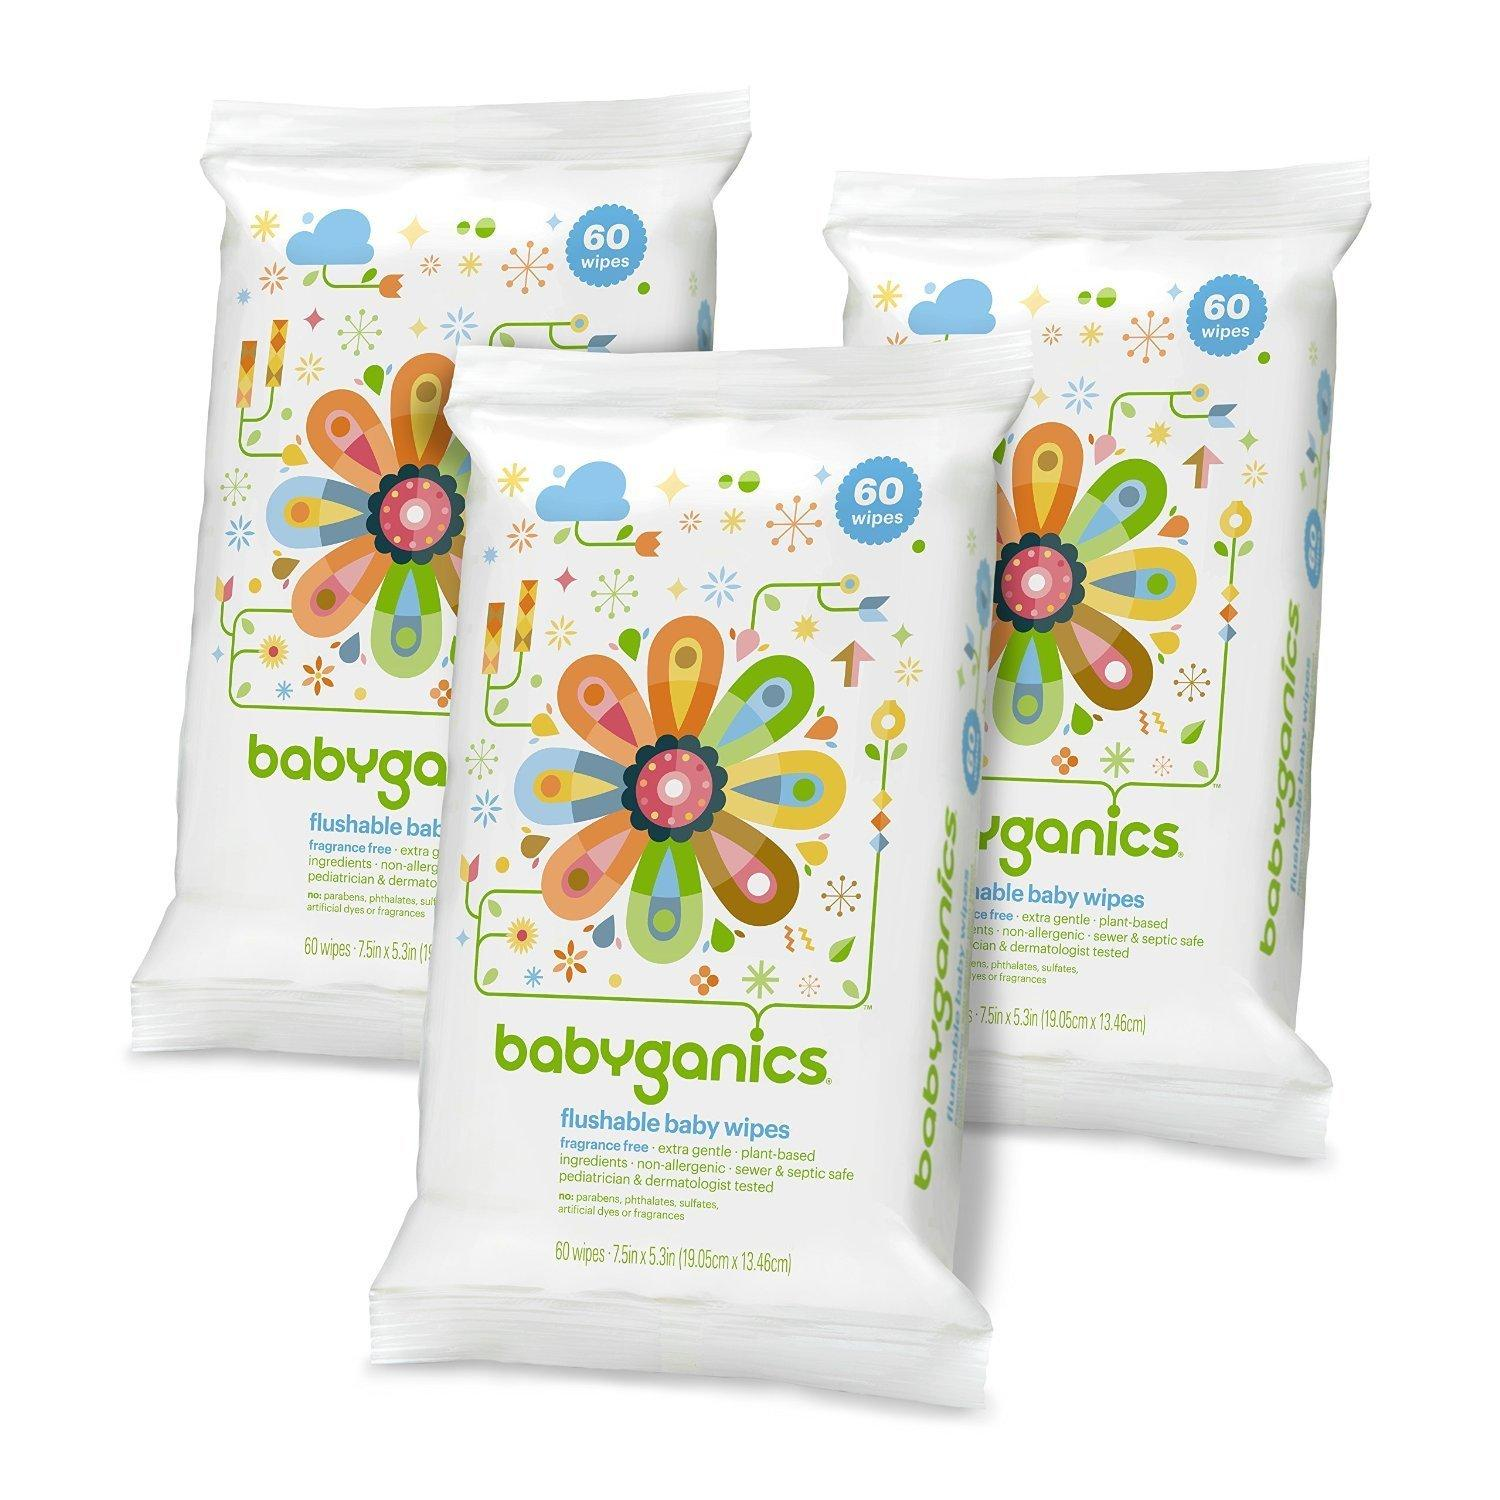 Babyganics Flushable Baby Wipes, Fragrance Free, 60 Count (Pack of 3, 180 Total Wipes)